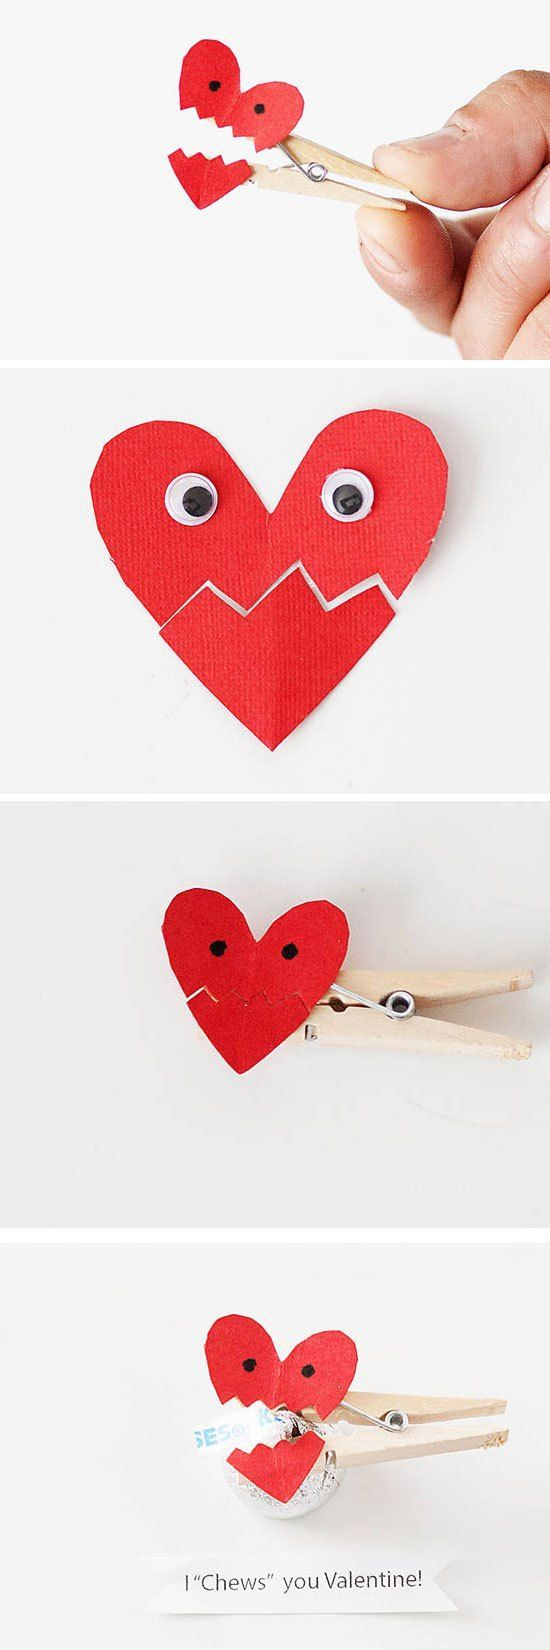 Simple valentine crafts for toddlers - Http Wakemytrend Com 23 Fun Valentines Day Crafts For Kids To Make